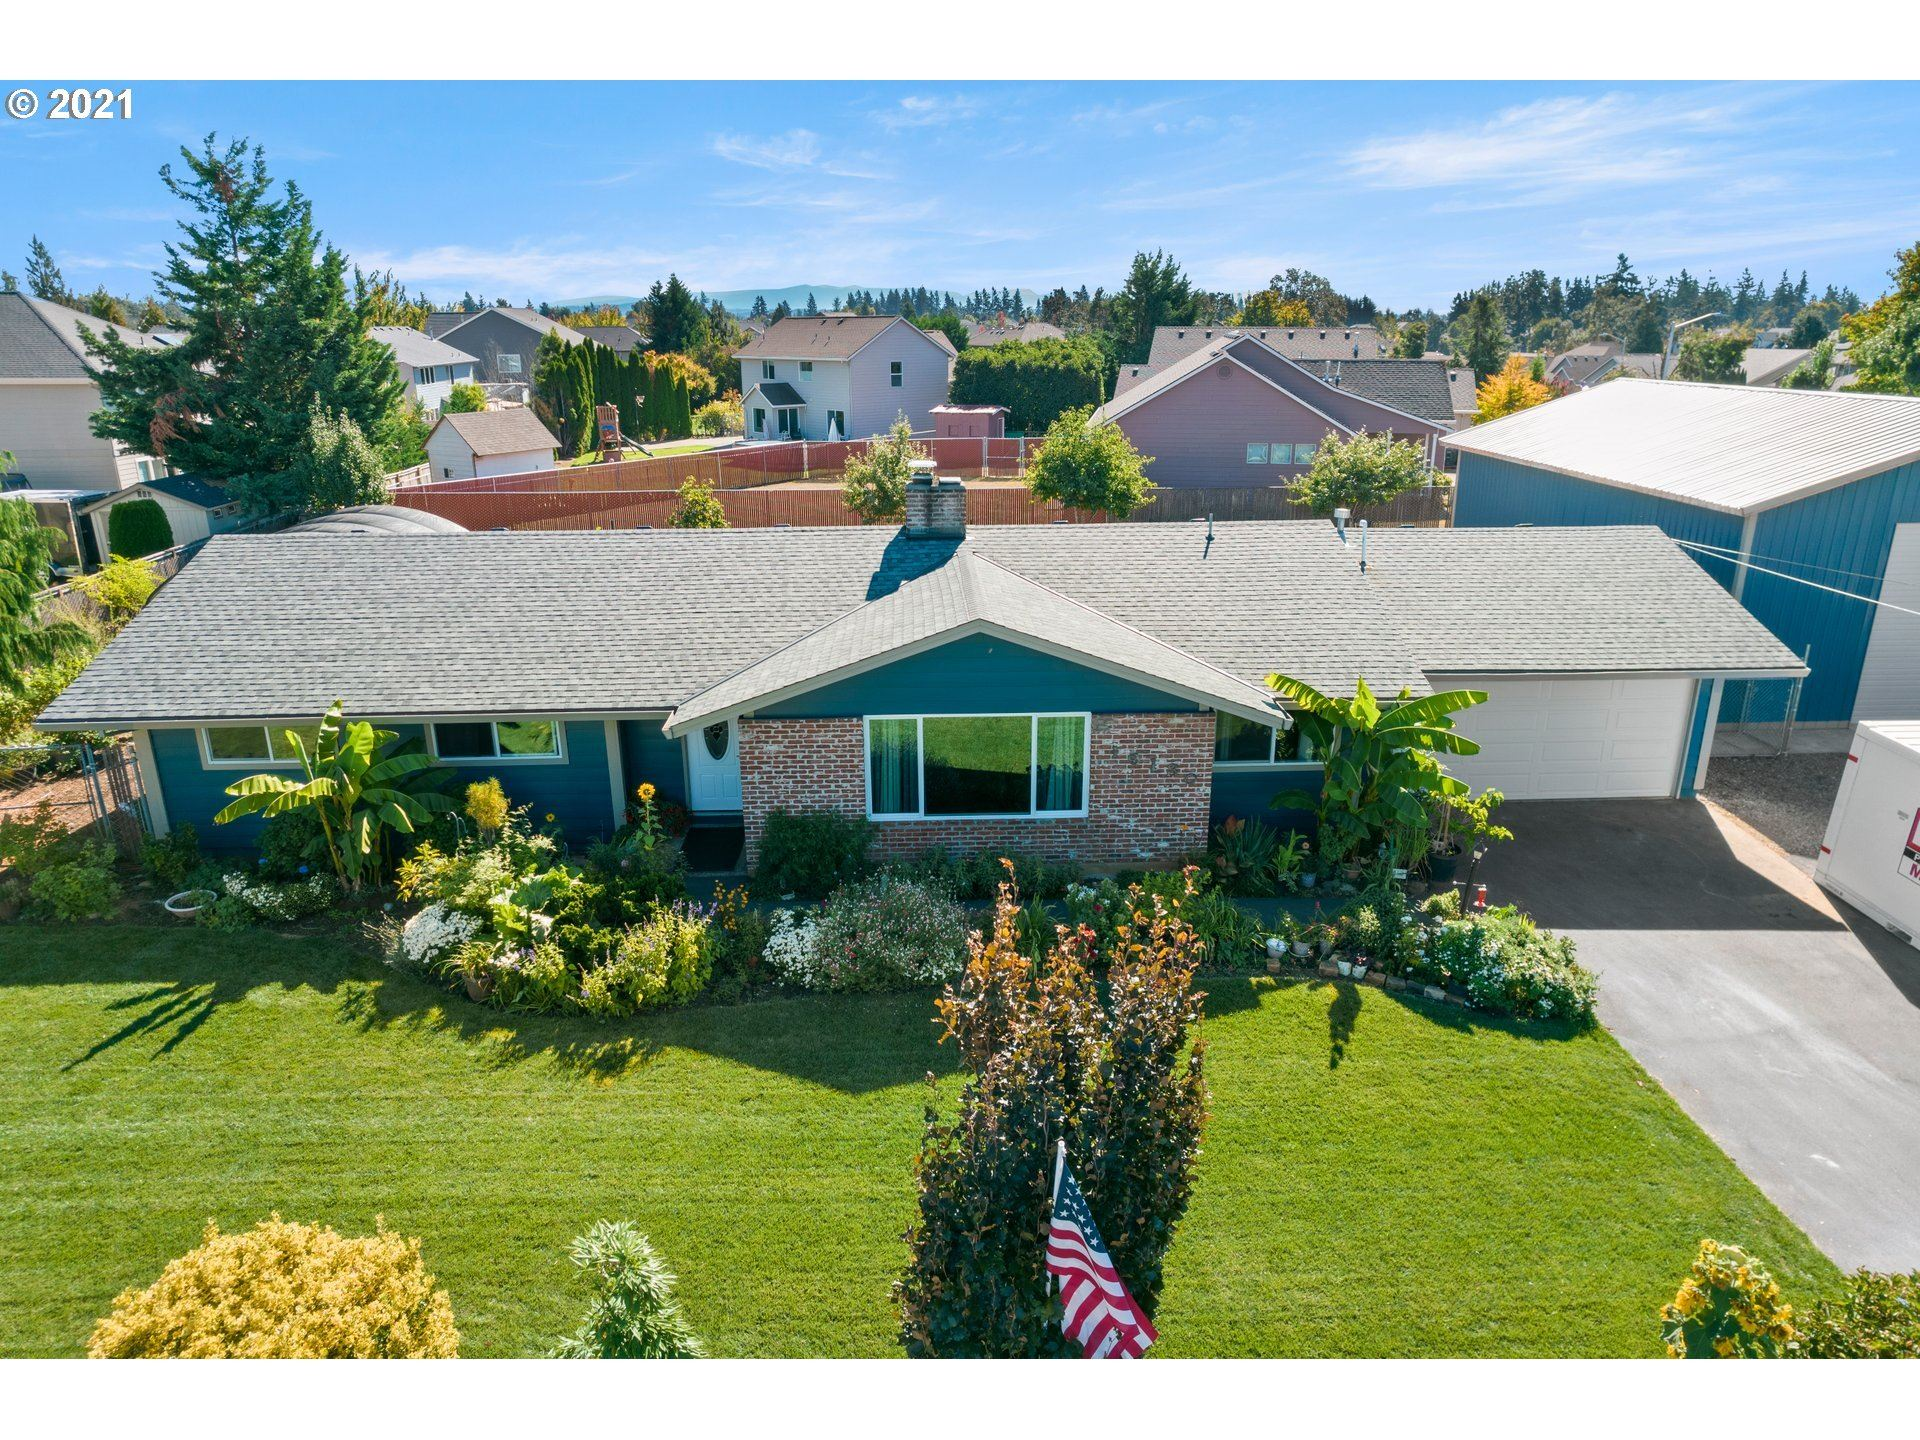 19130 S END RD, Oregon City, OR 97045 - #: 21402235